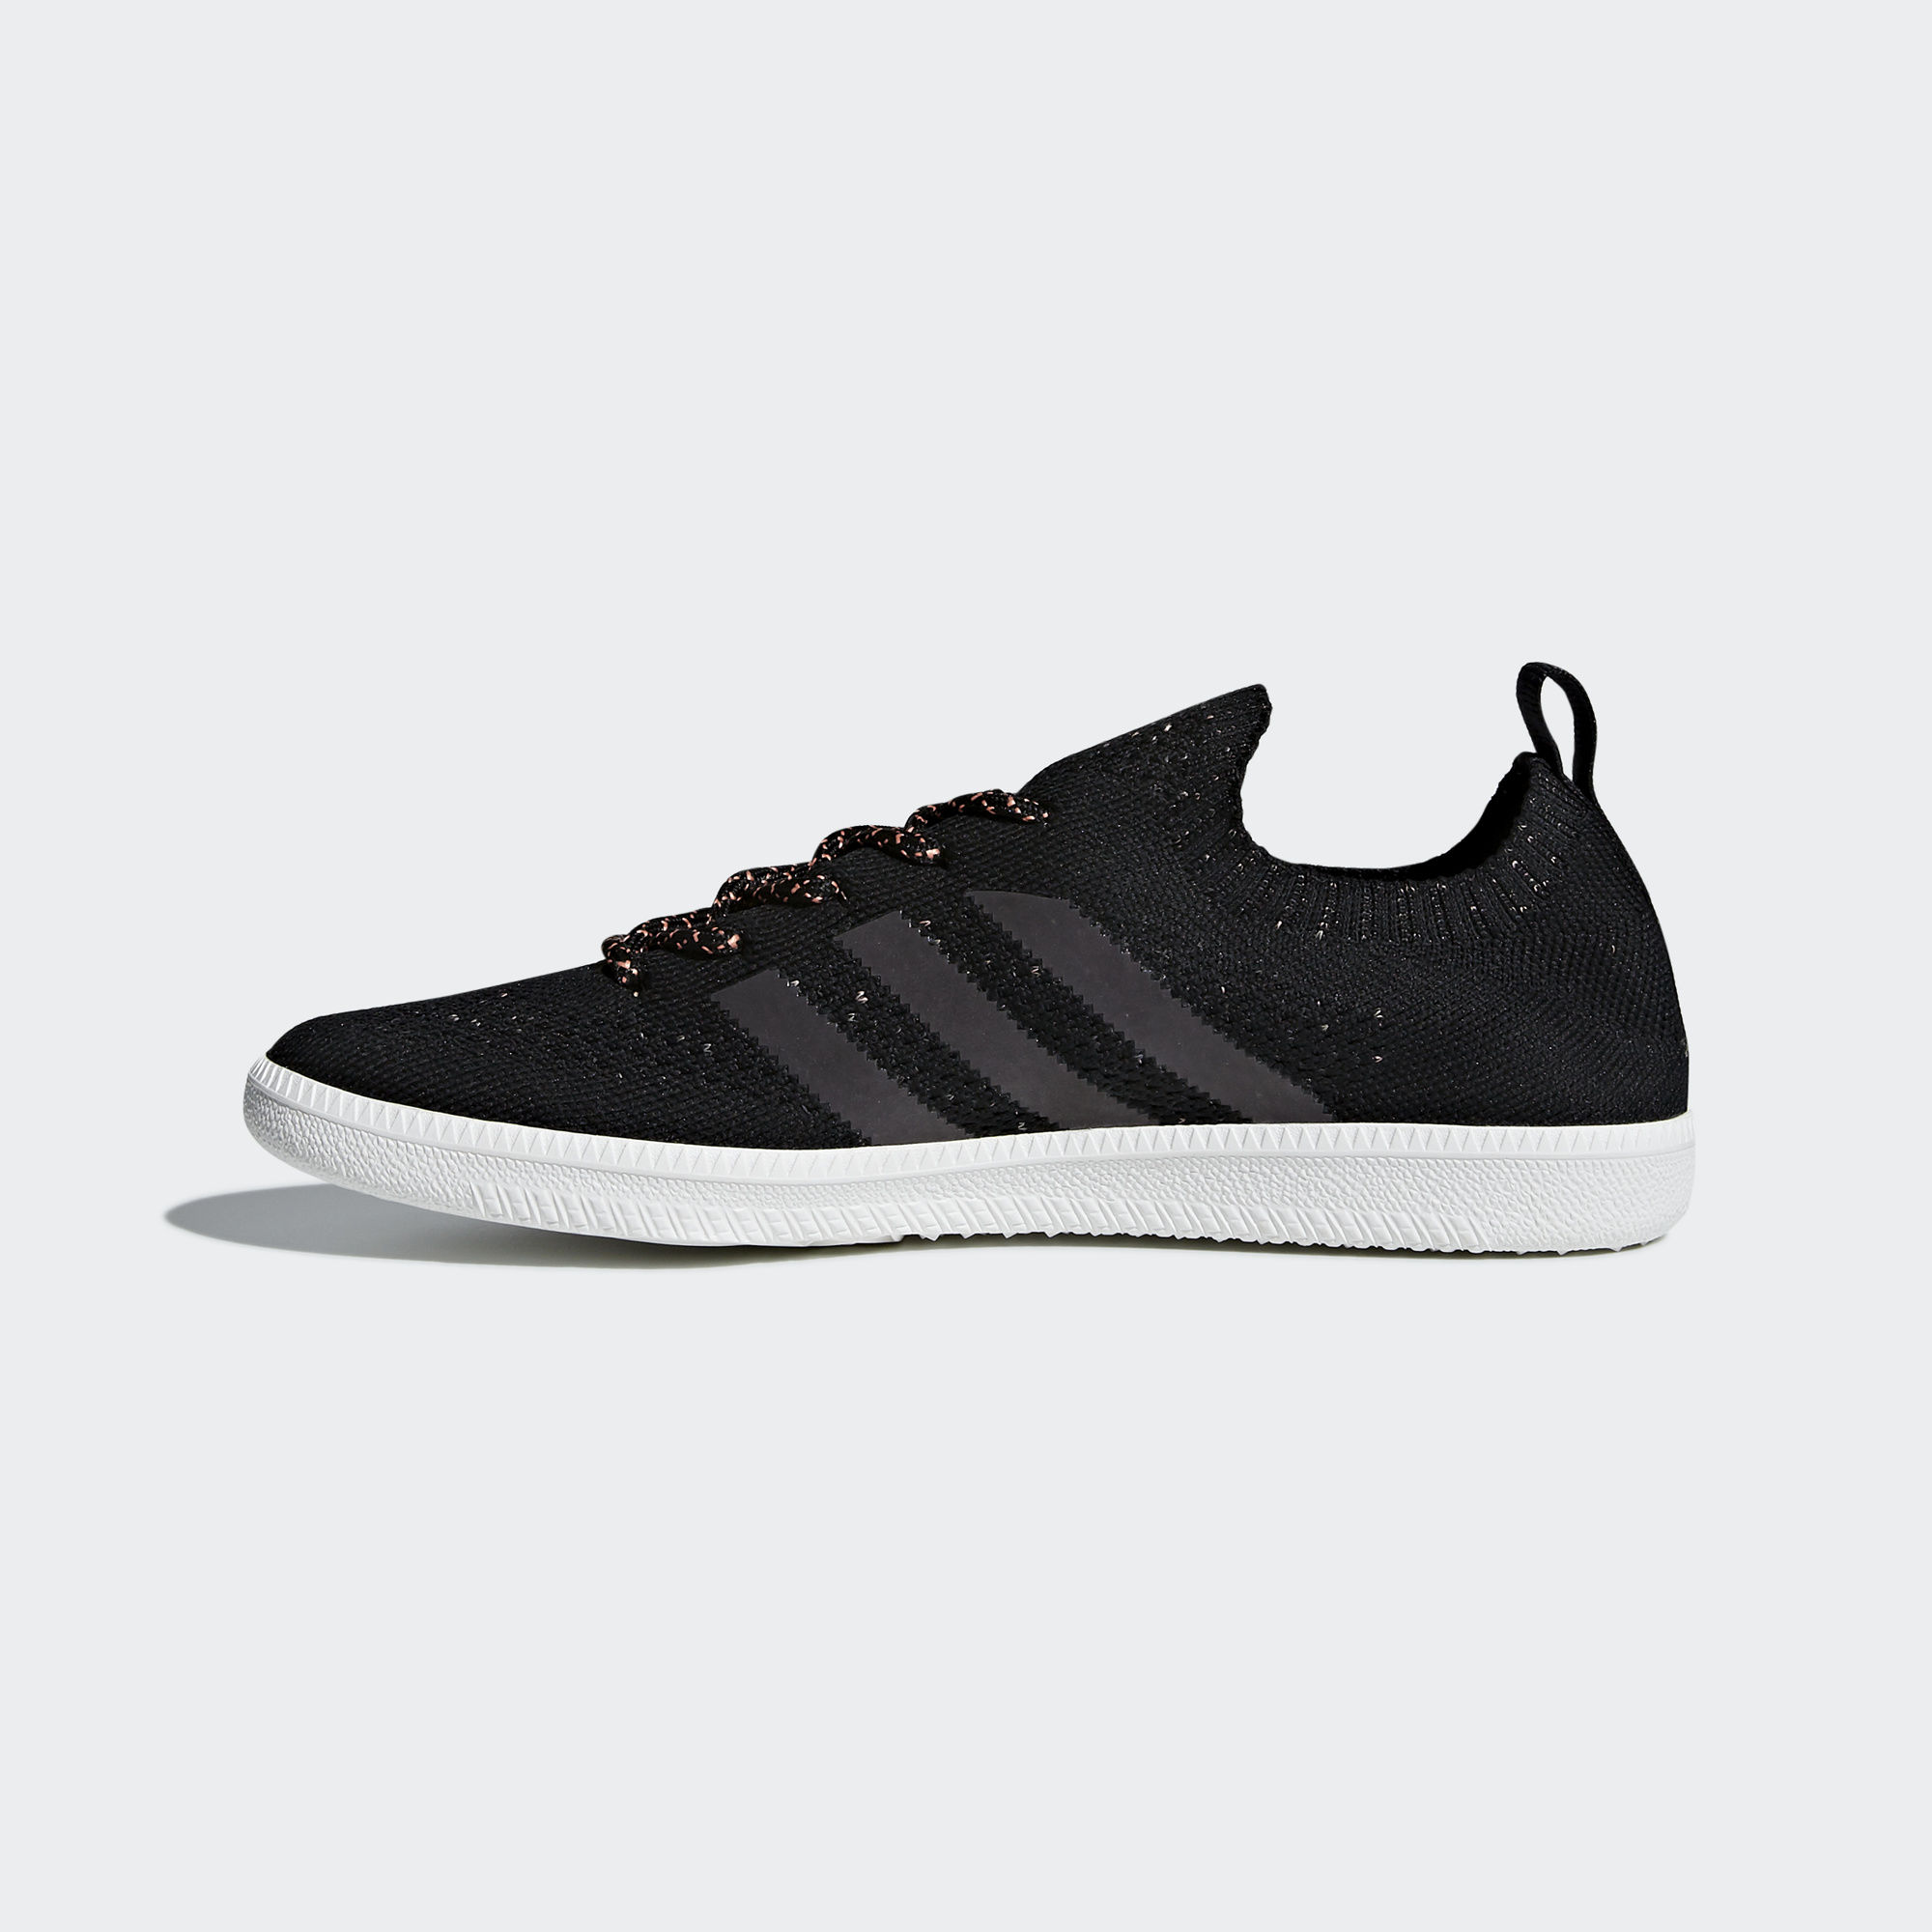 Adidas Samba Sock Primeknit Shoes Core Black Crystal